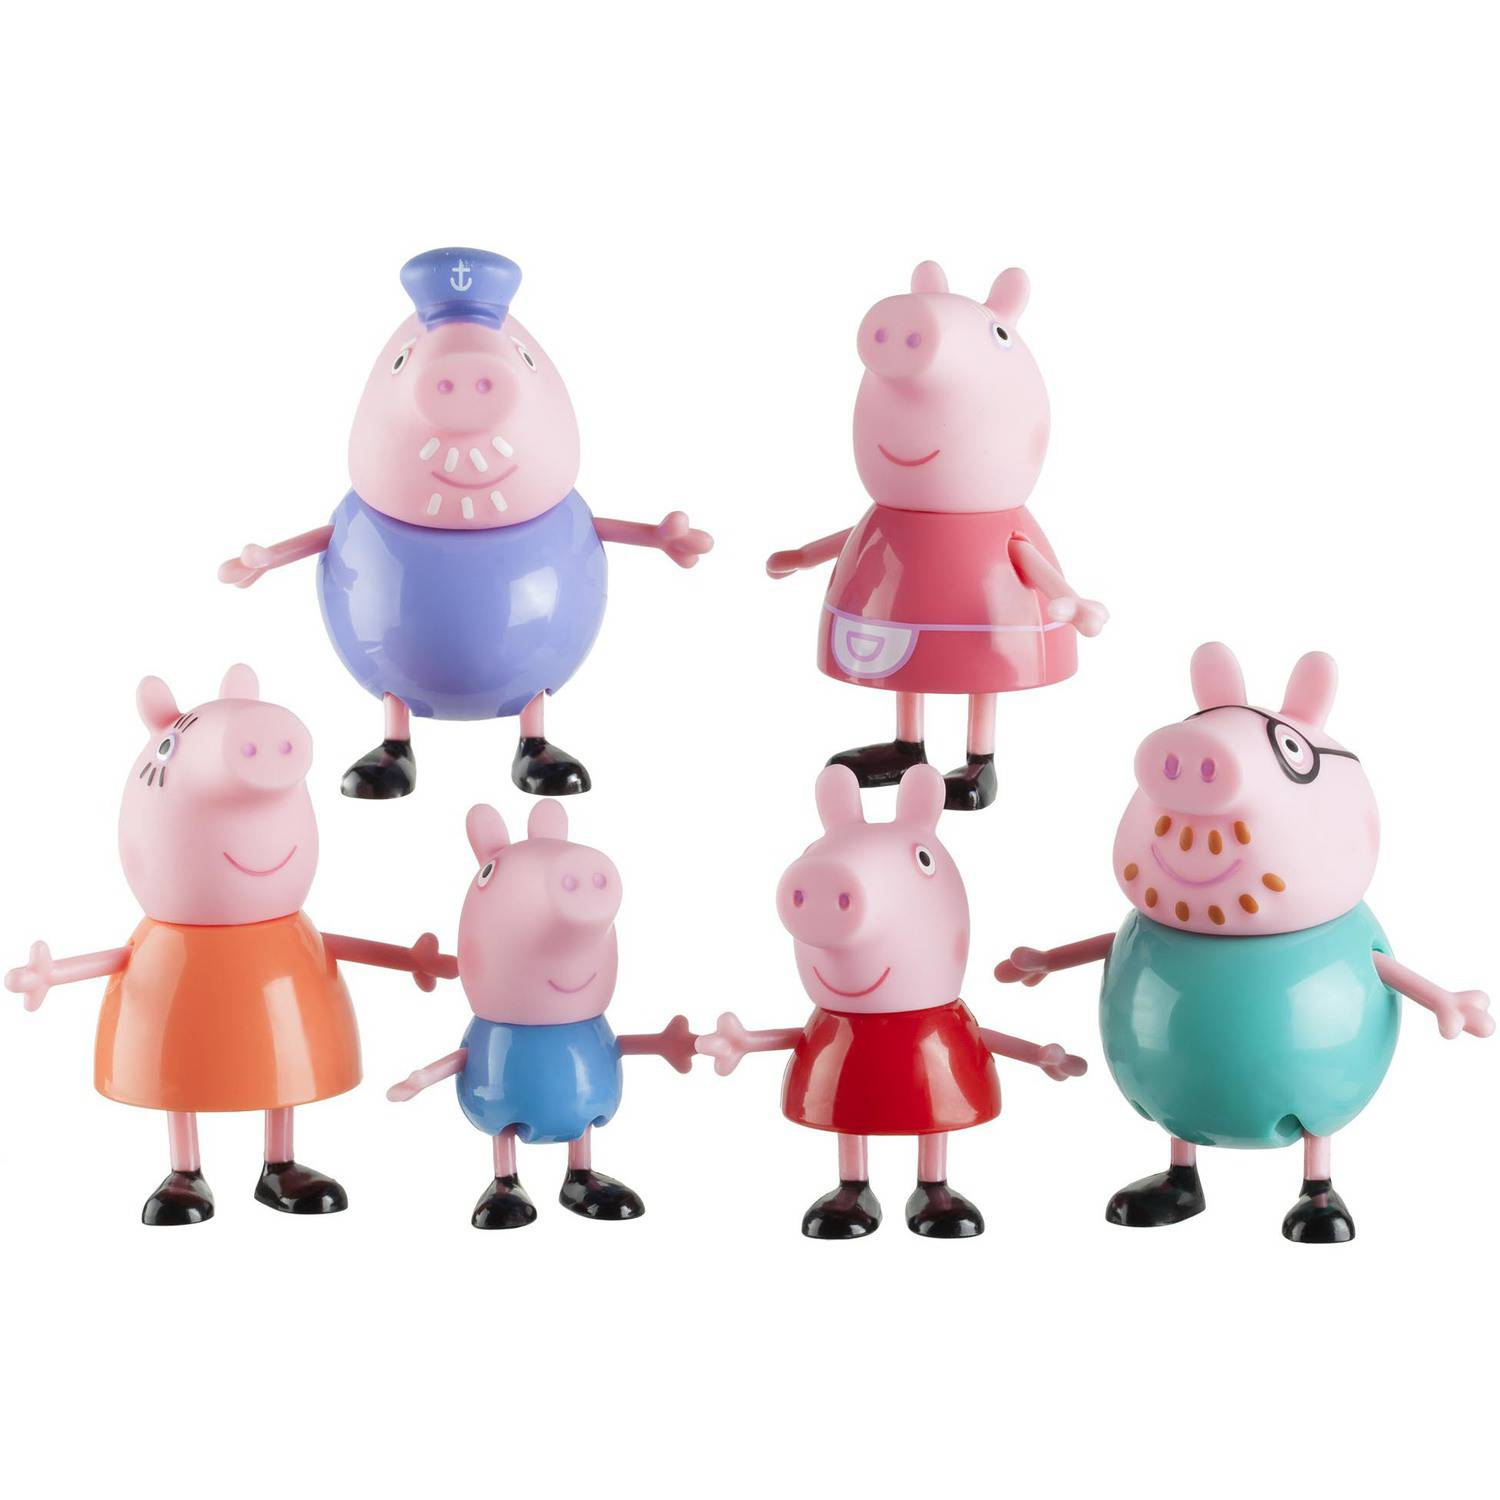 Peppa Pig Family Figures, 6-Pack